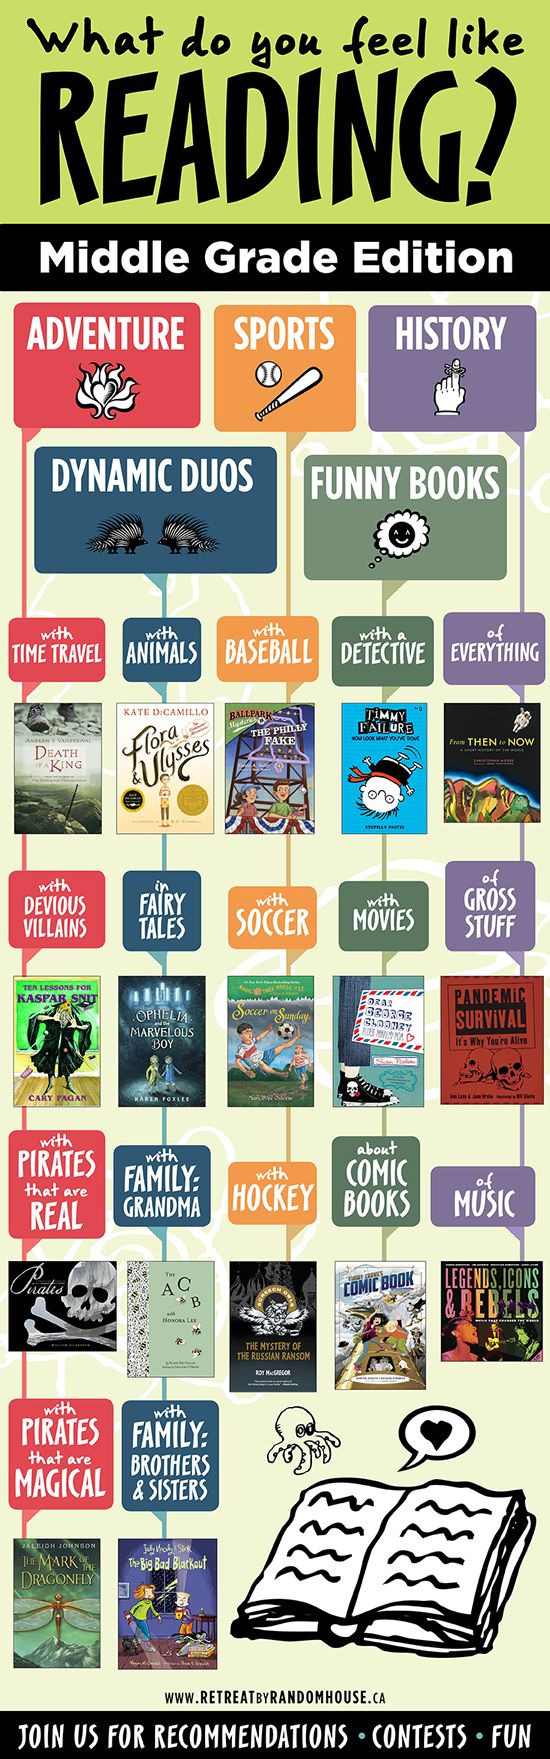 Books for Your Middle Grade Reader